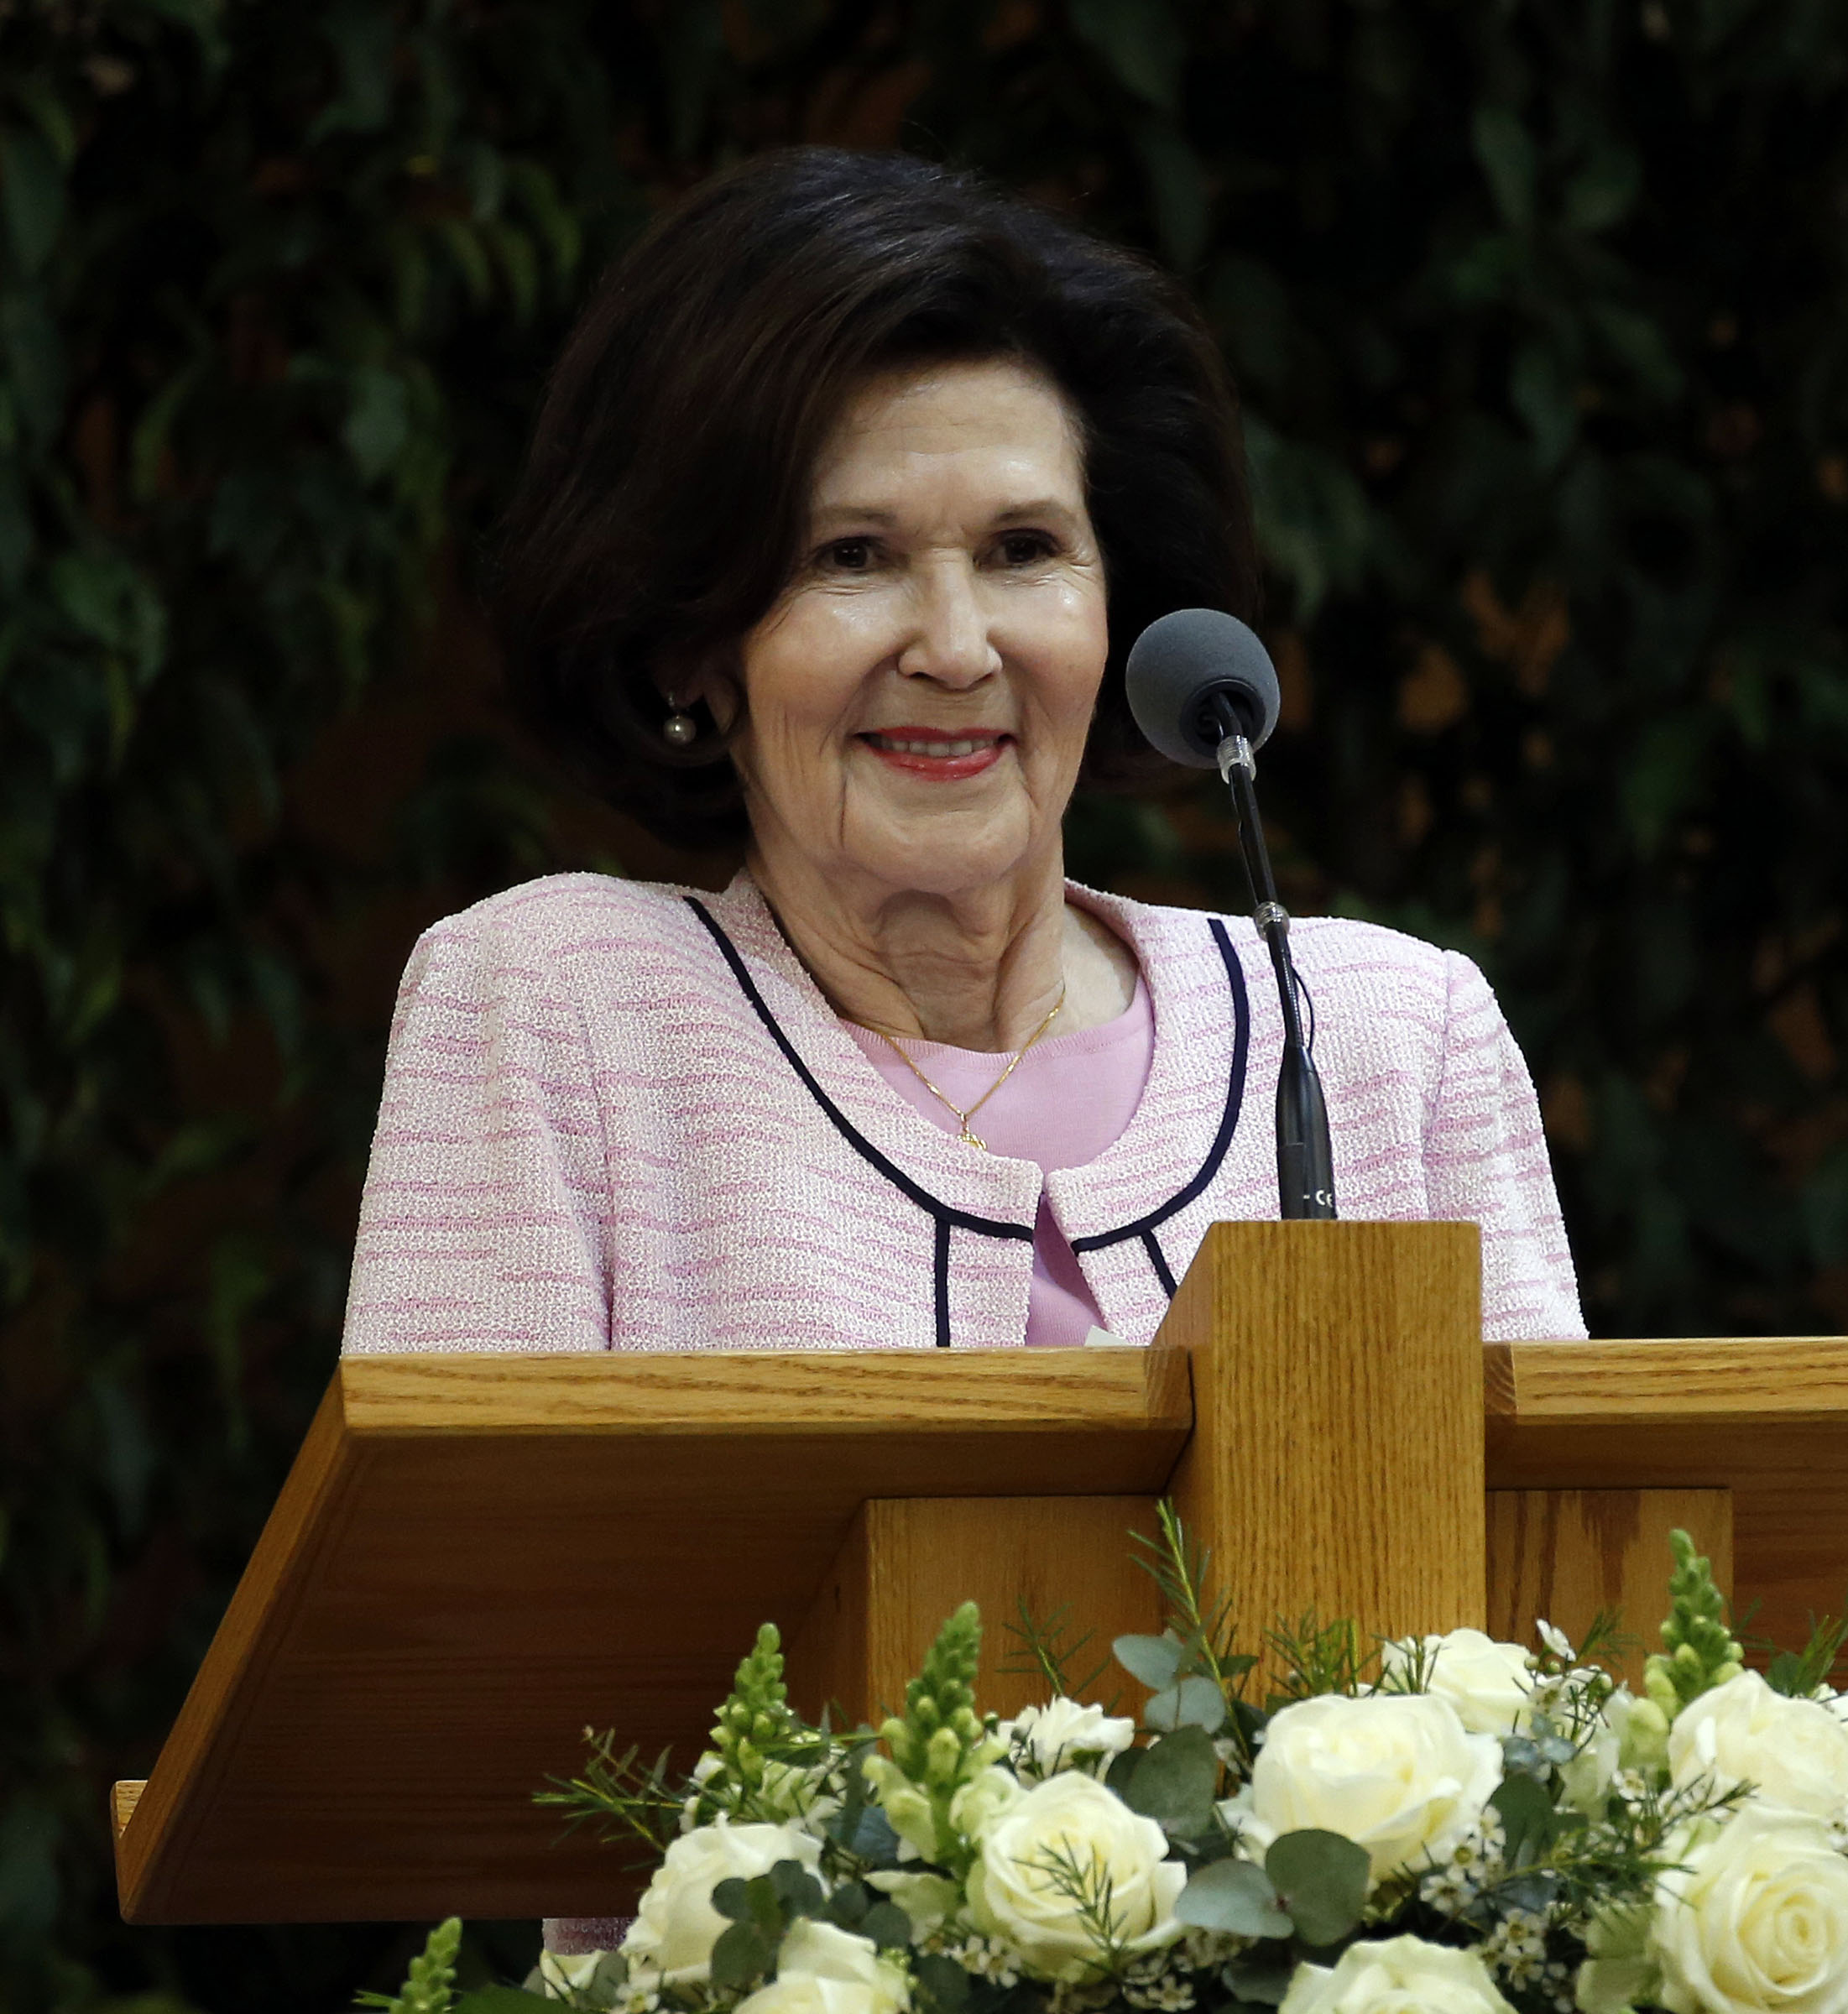 Sister Patricia Holland speaks during a meeting at the Hyde Park Chapel of The Church of Jesus Christ of Latter-day Saints in London on Thursday, April 12, 2018.